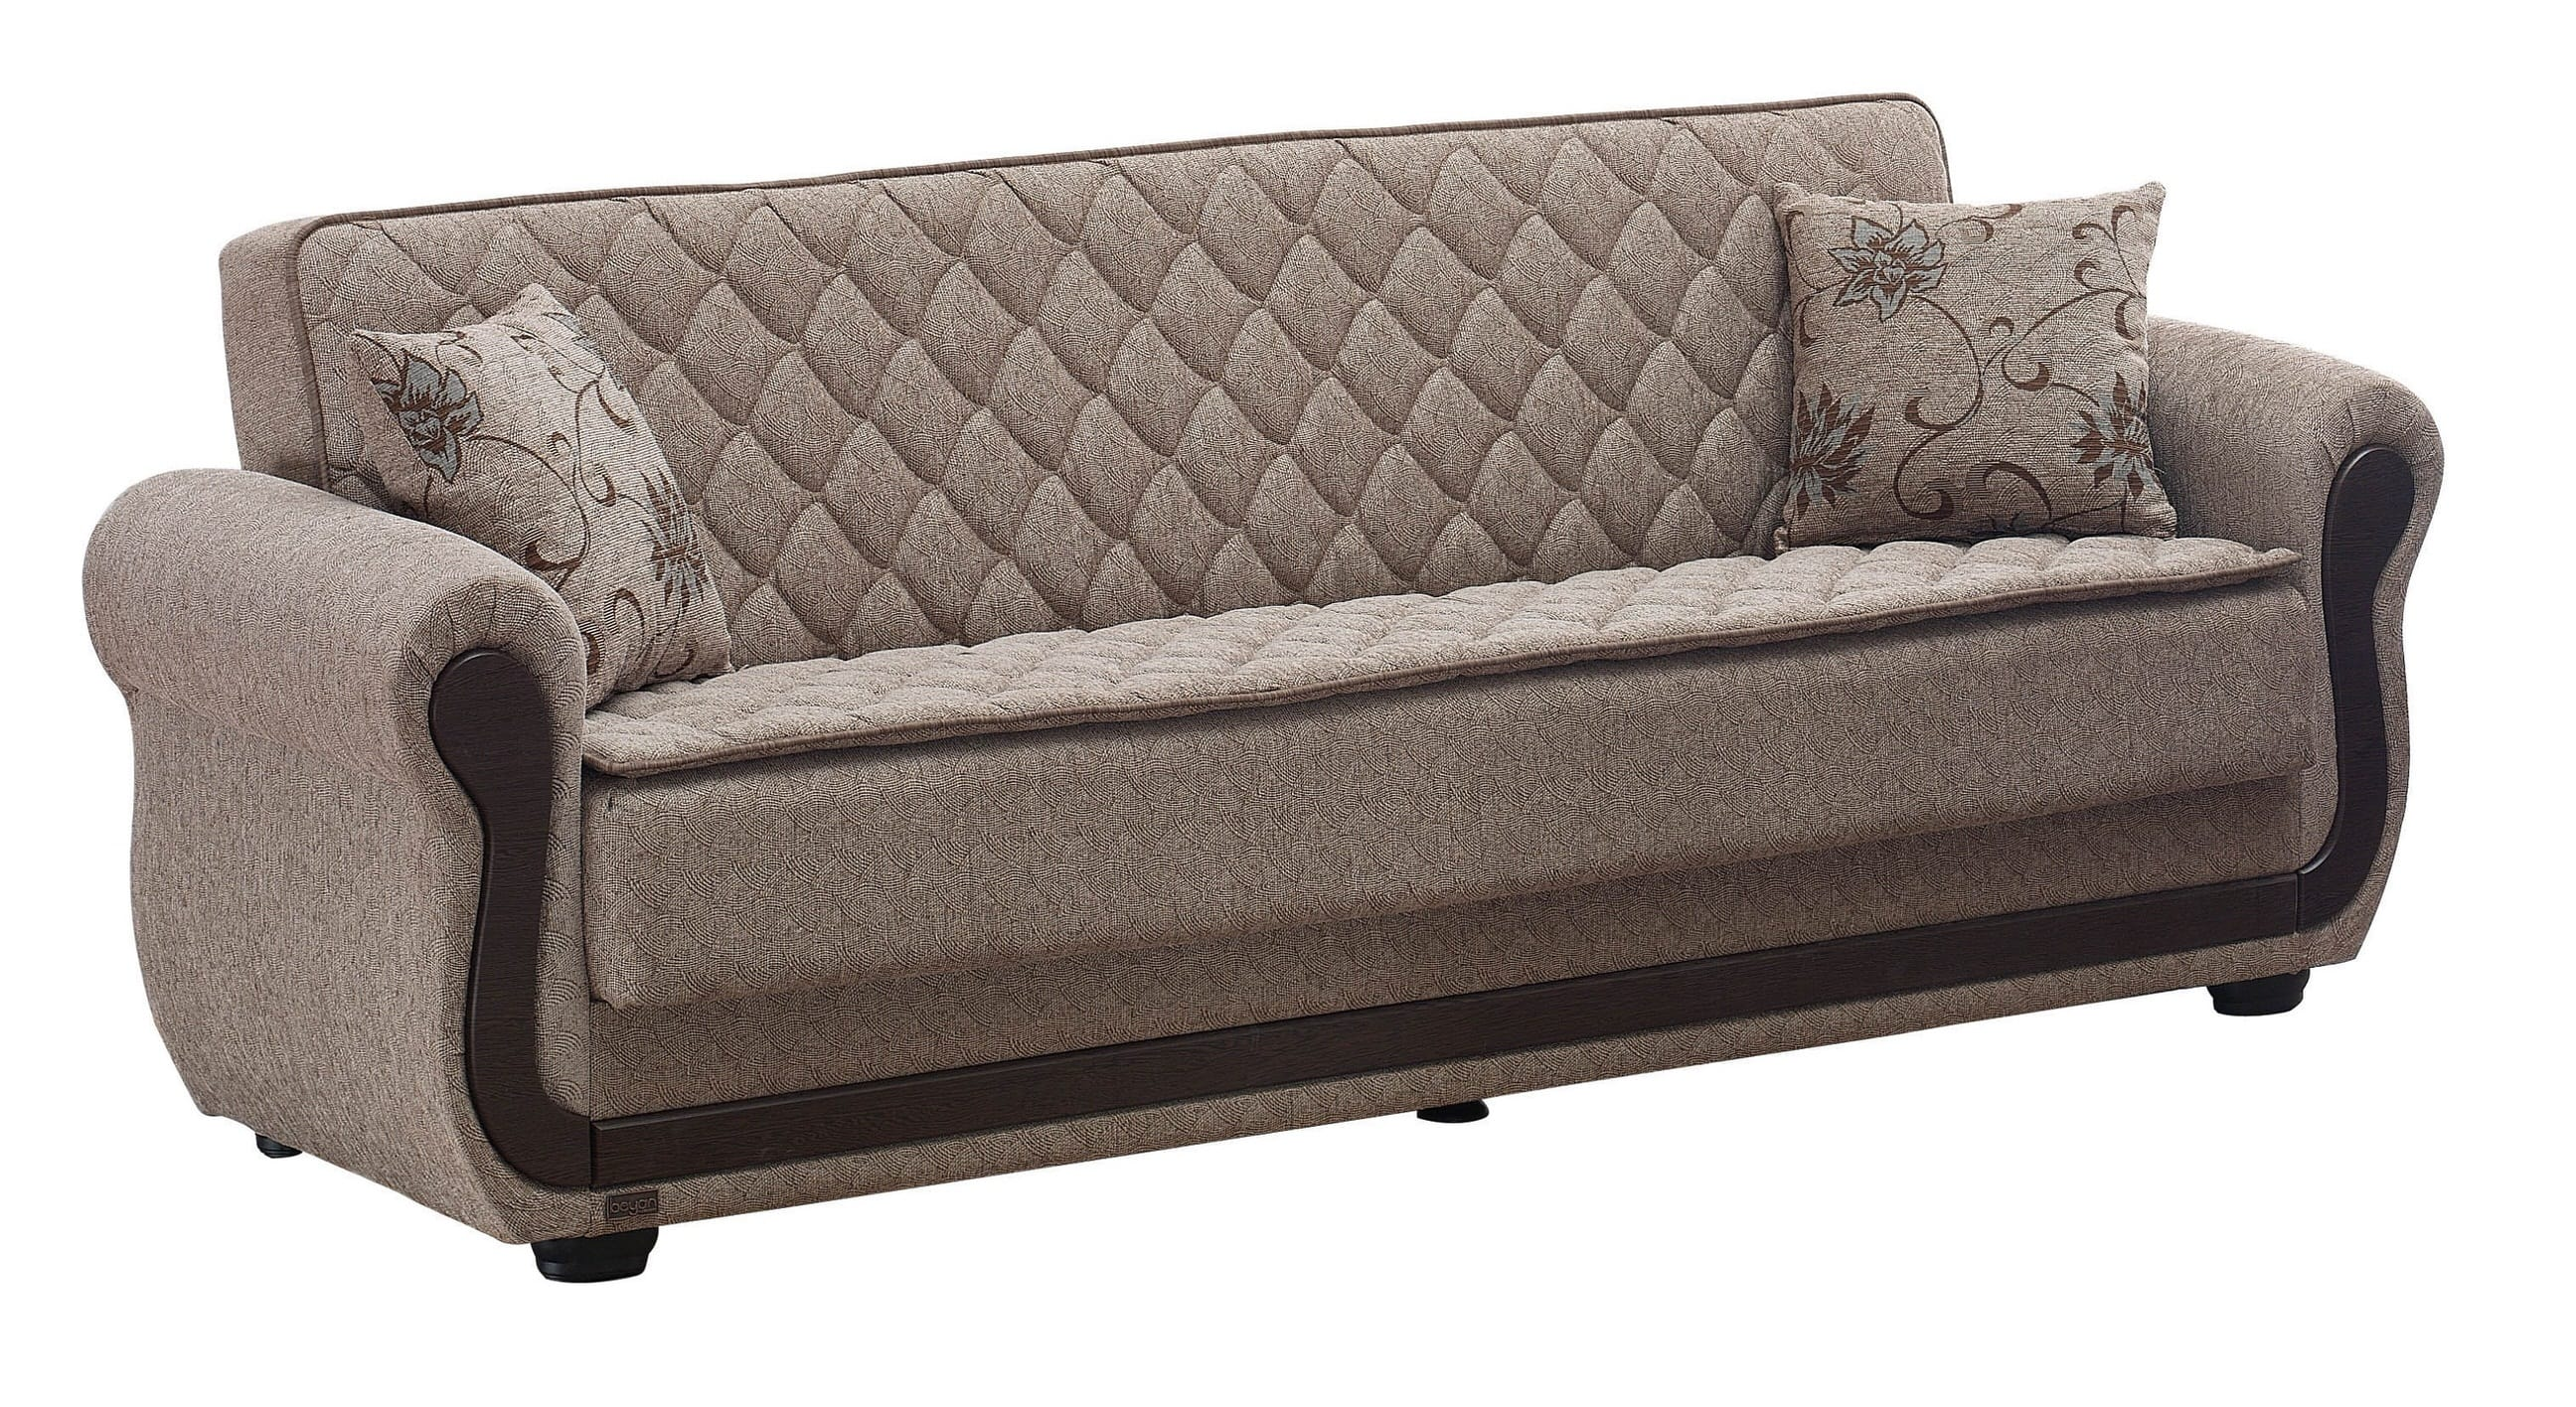 Storage Unit Newark Ohio Newark Sofa Bed By Empire Furniture Usa